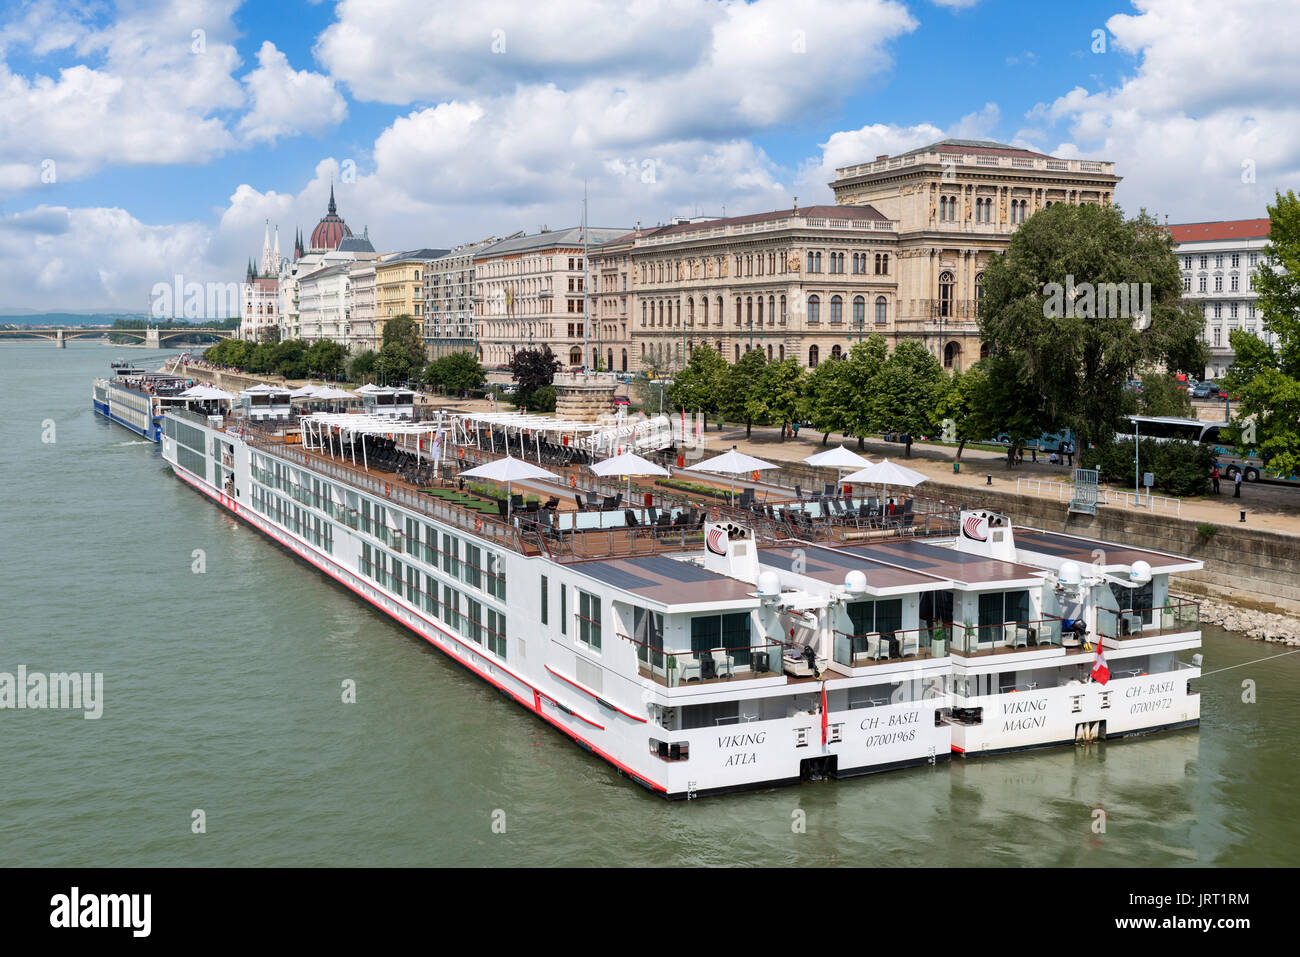 Viking River Cruises cruise boats moored on the Pest side of the river Danube with the Parliament building in the distance, Budapest, Hungary - Stock Image